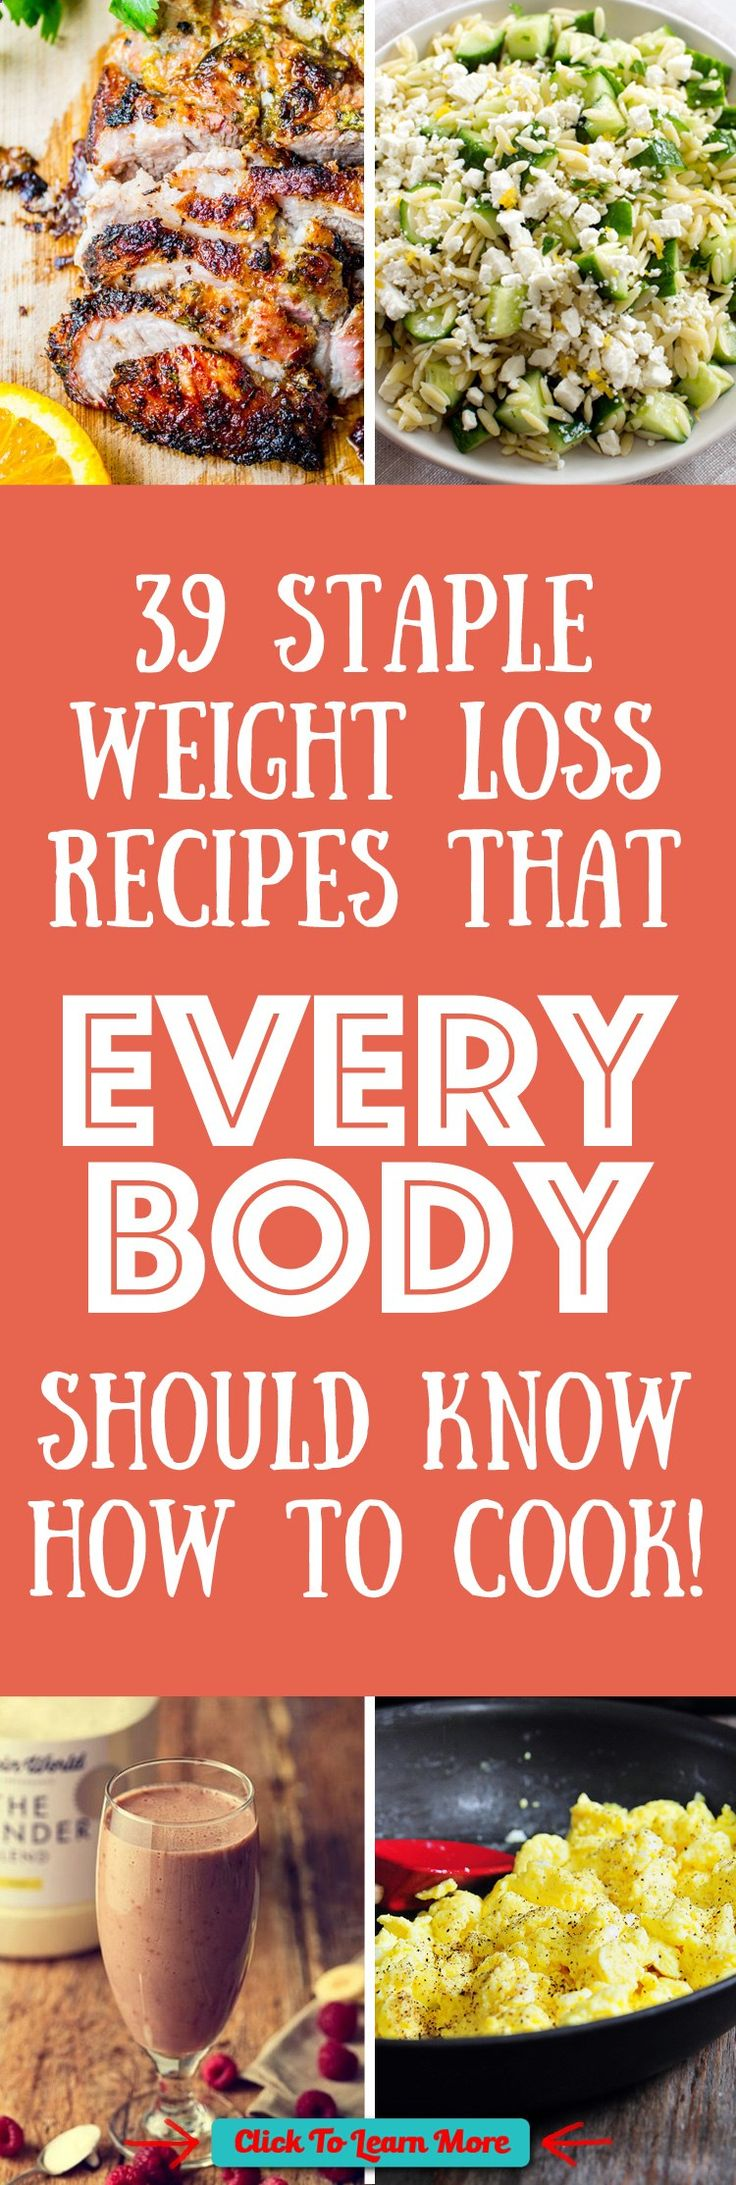 #FastestWayToLoseWeight by EATING, Click to learn more, We have collected 39 weight loss recipes that we think everyone should know how to cook and know how to cook well. From perfectly cooked chicken breasts, to fish in a bag, to the healthiest smoothies, roasted vegetables, salads, soups and healthy eating treats like cookies and mousse. , #HealthyRecipes, #FitnessRecipes, #BurnFatRecipes, #WeightLossRecipes, #WeightLossDiets